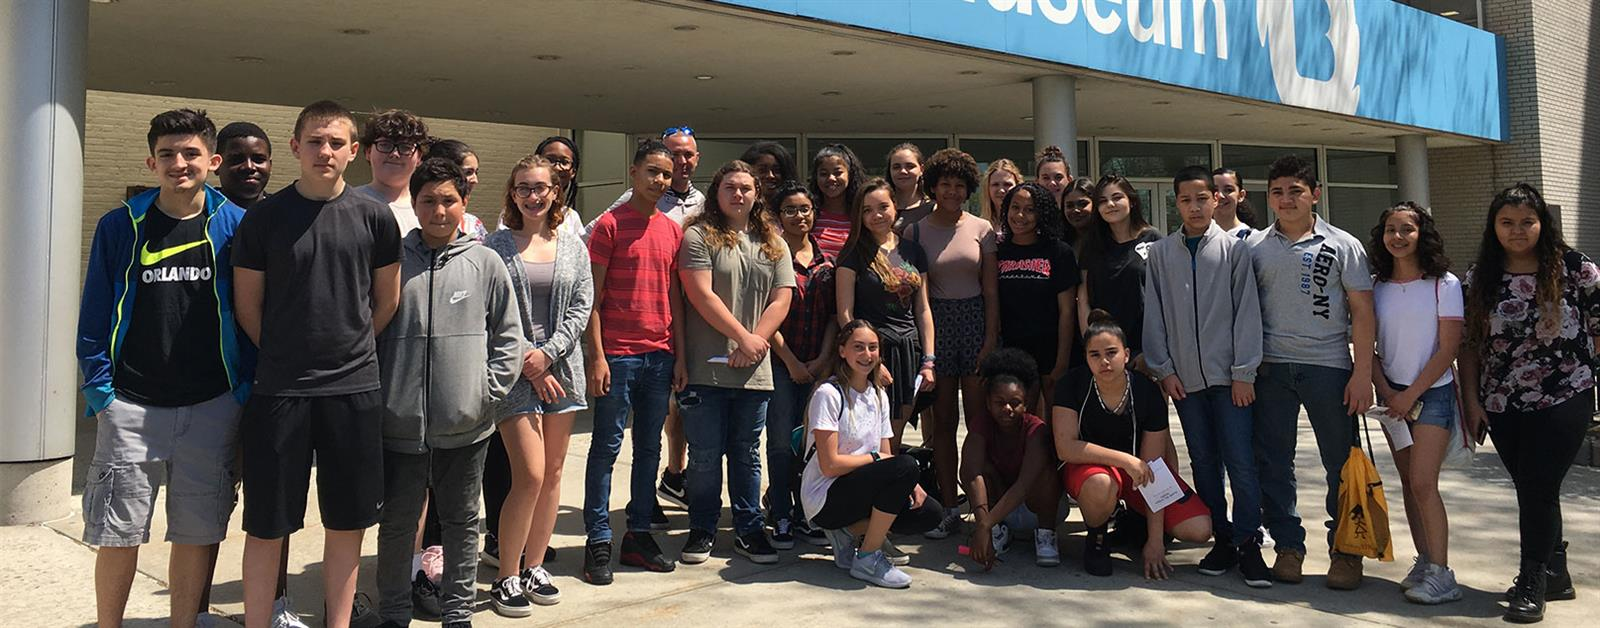 Students Connect with Art During Museum Visit photo